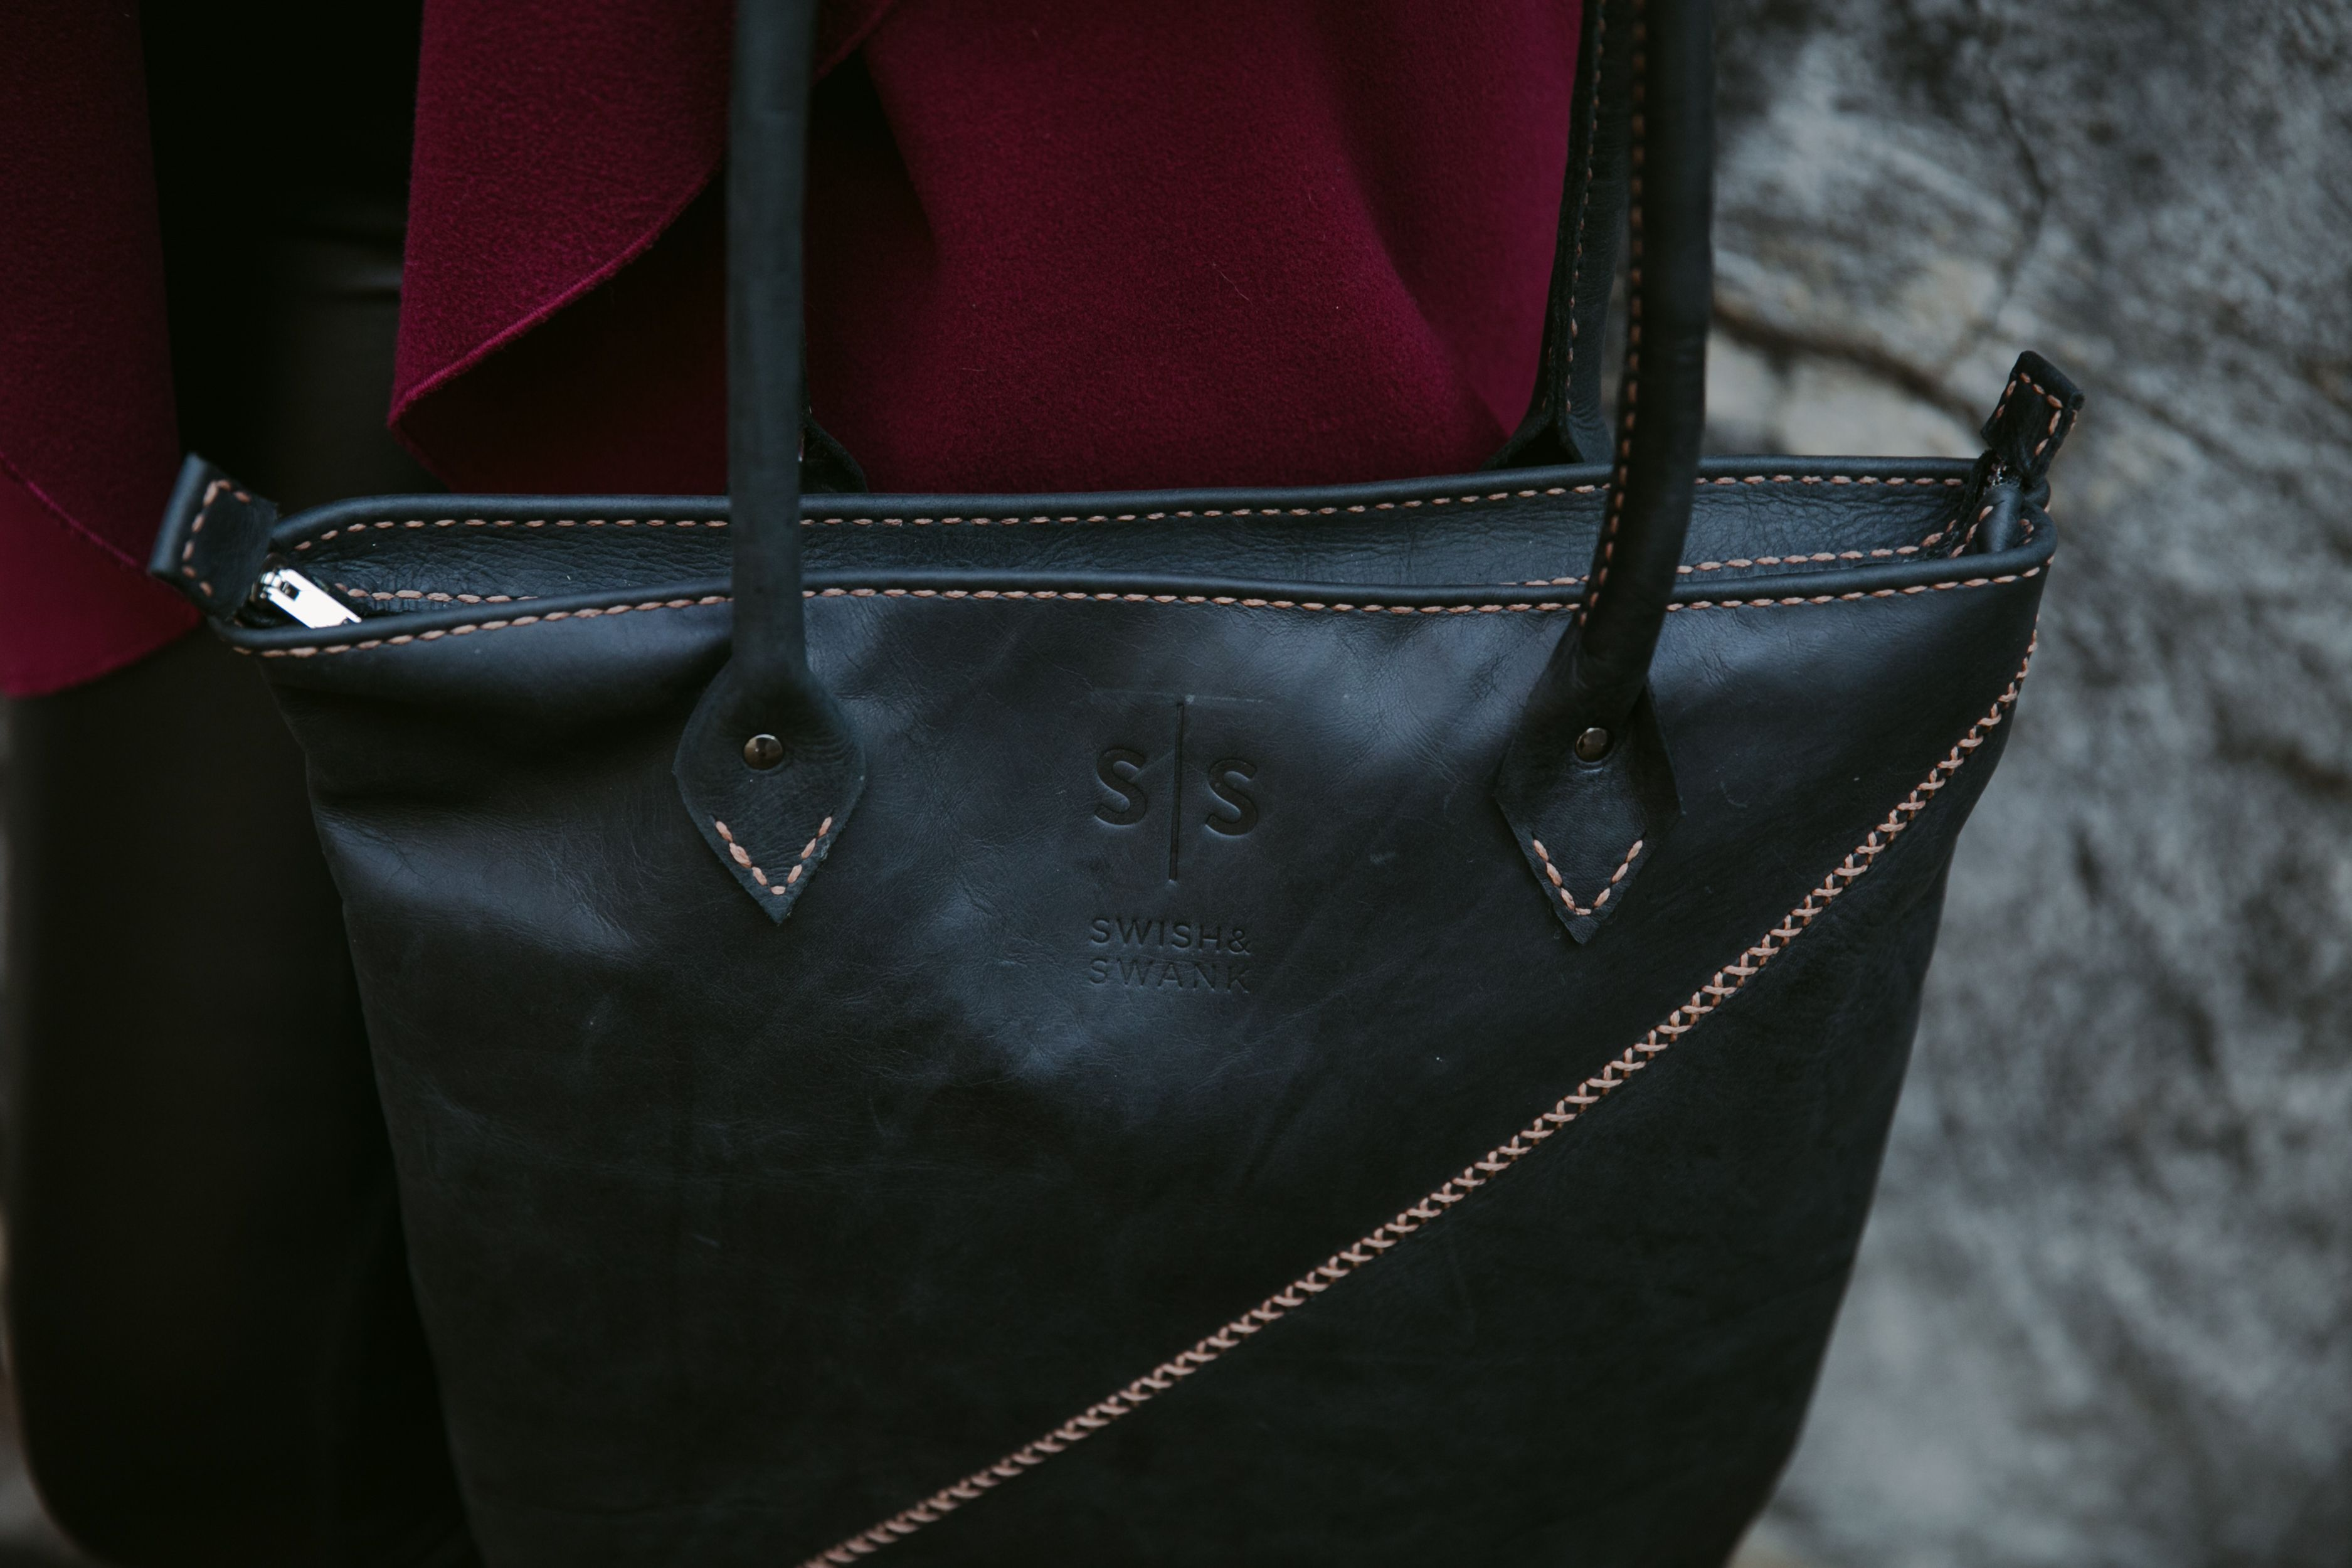 We Love To Make Slight Custom Changes Our Genuine Leather Handbags Fit Client S